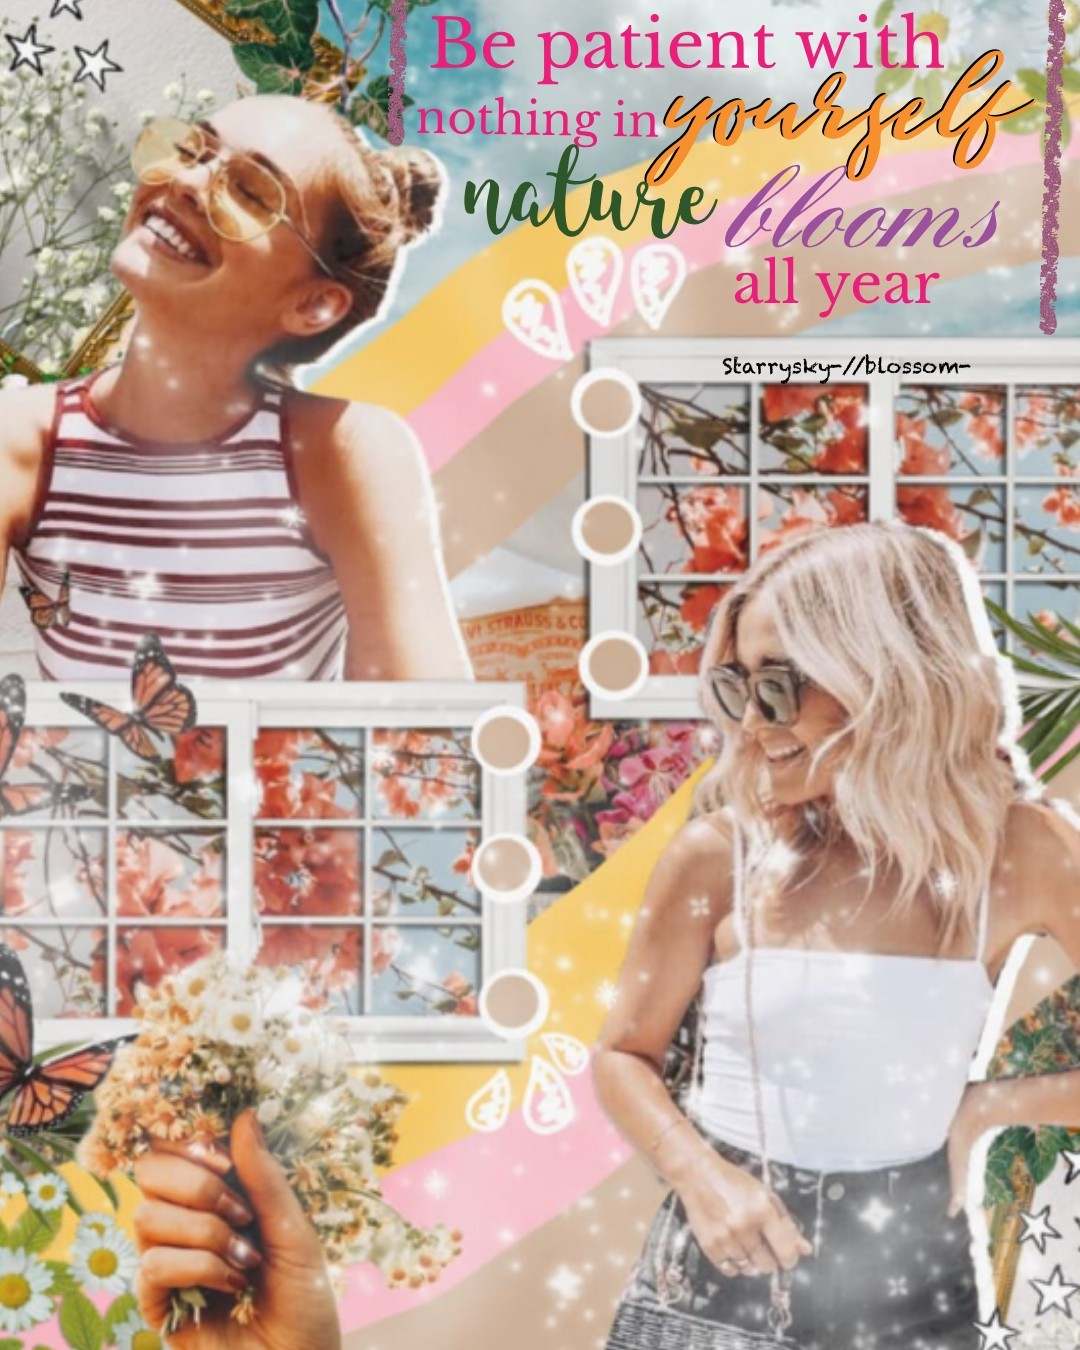 🌺Collab with🌺 The amazing and talented blossom--go follow her rn she's so talented and sweet 😊❤️❤️